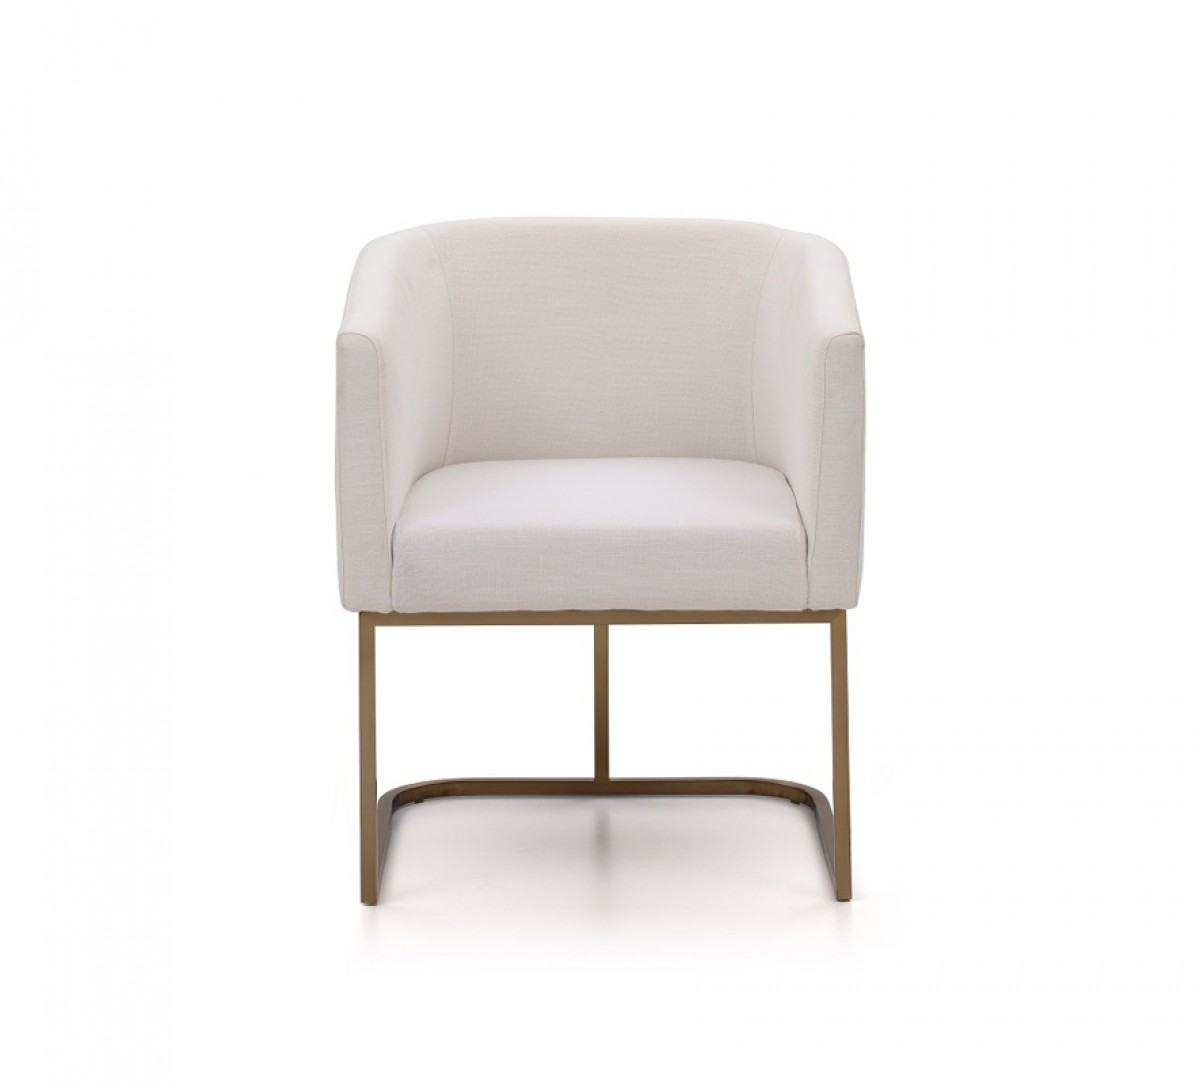 Dining Chair Fabric Modrest Yukon Modern White Fabric And Antique Brass Dining